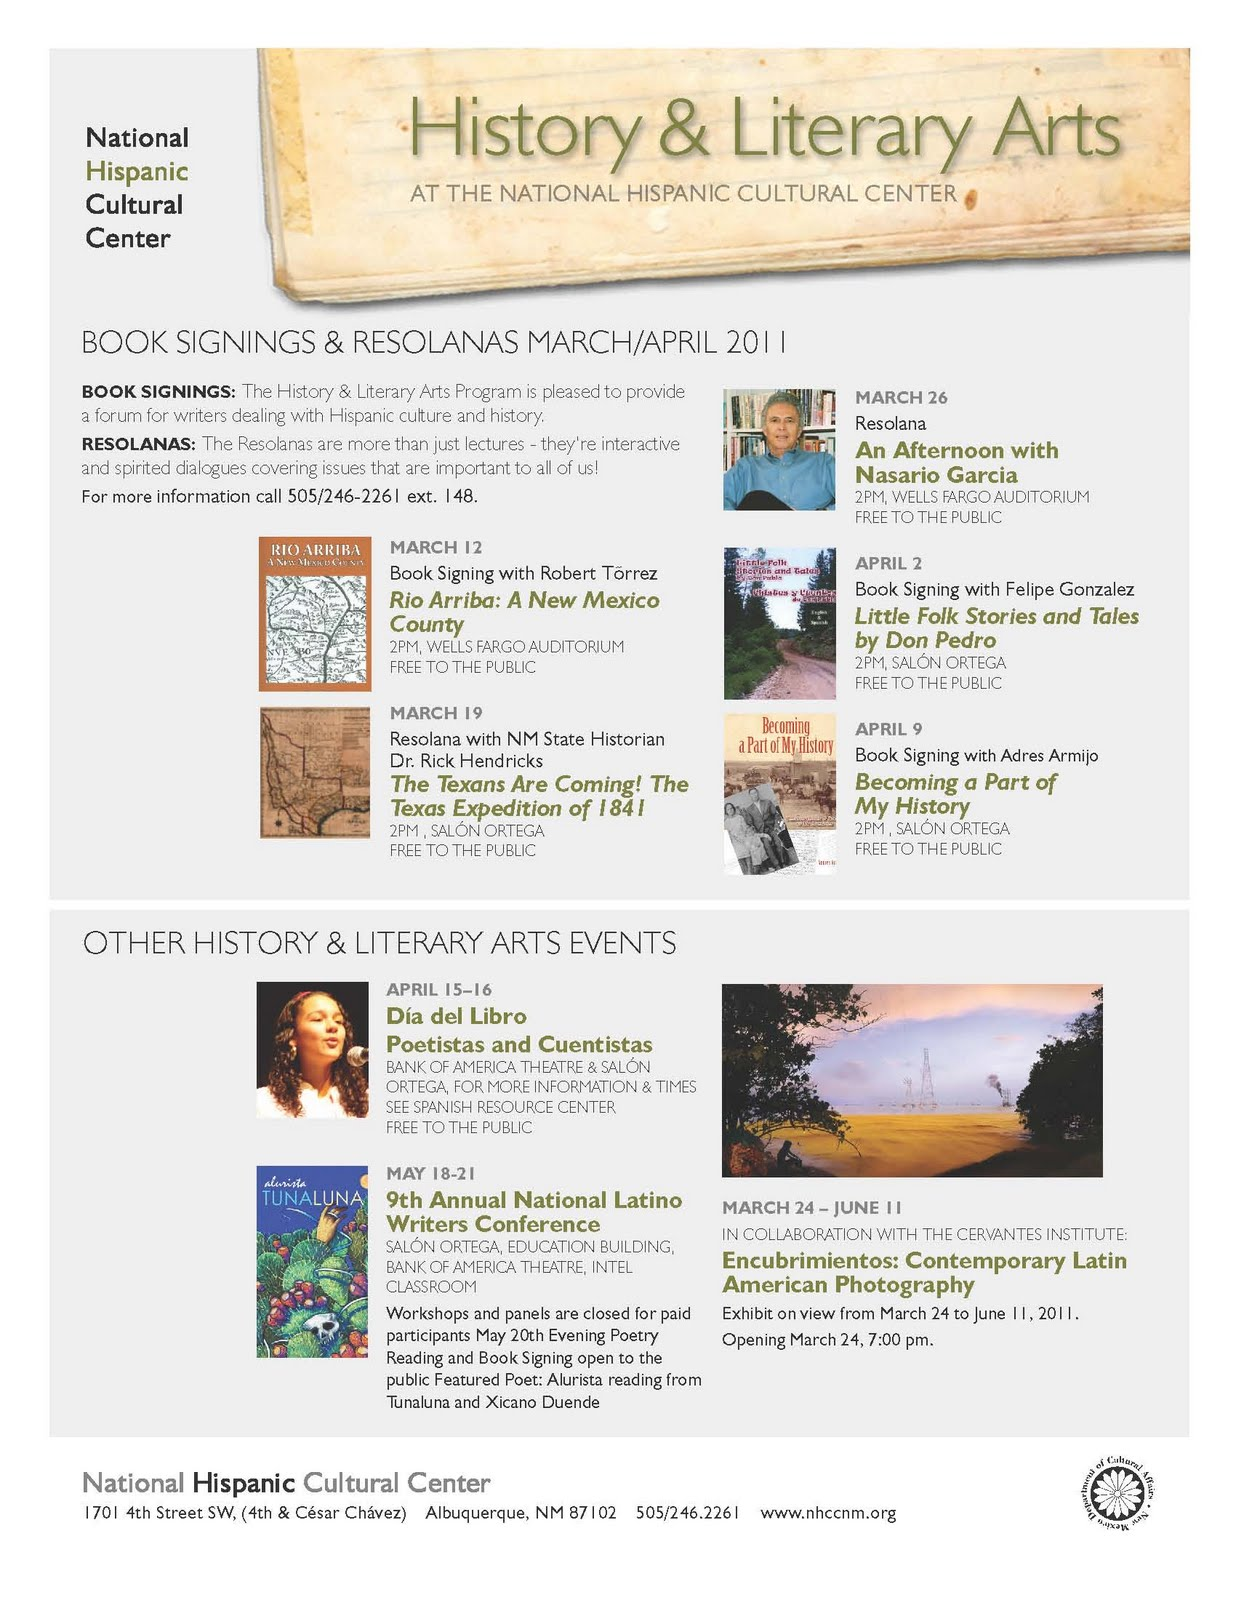 Click On The Image Forrmation About Several Events Scheduled For The  National Hispanic Cultural Center In Albuquerque, Nm